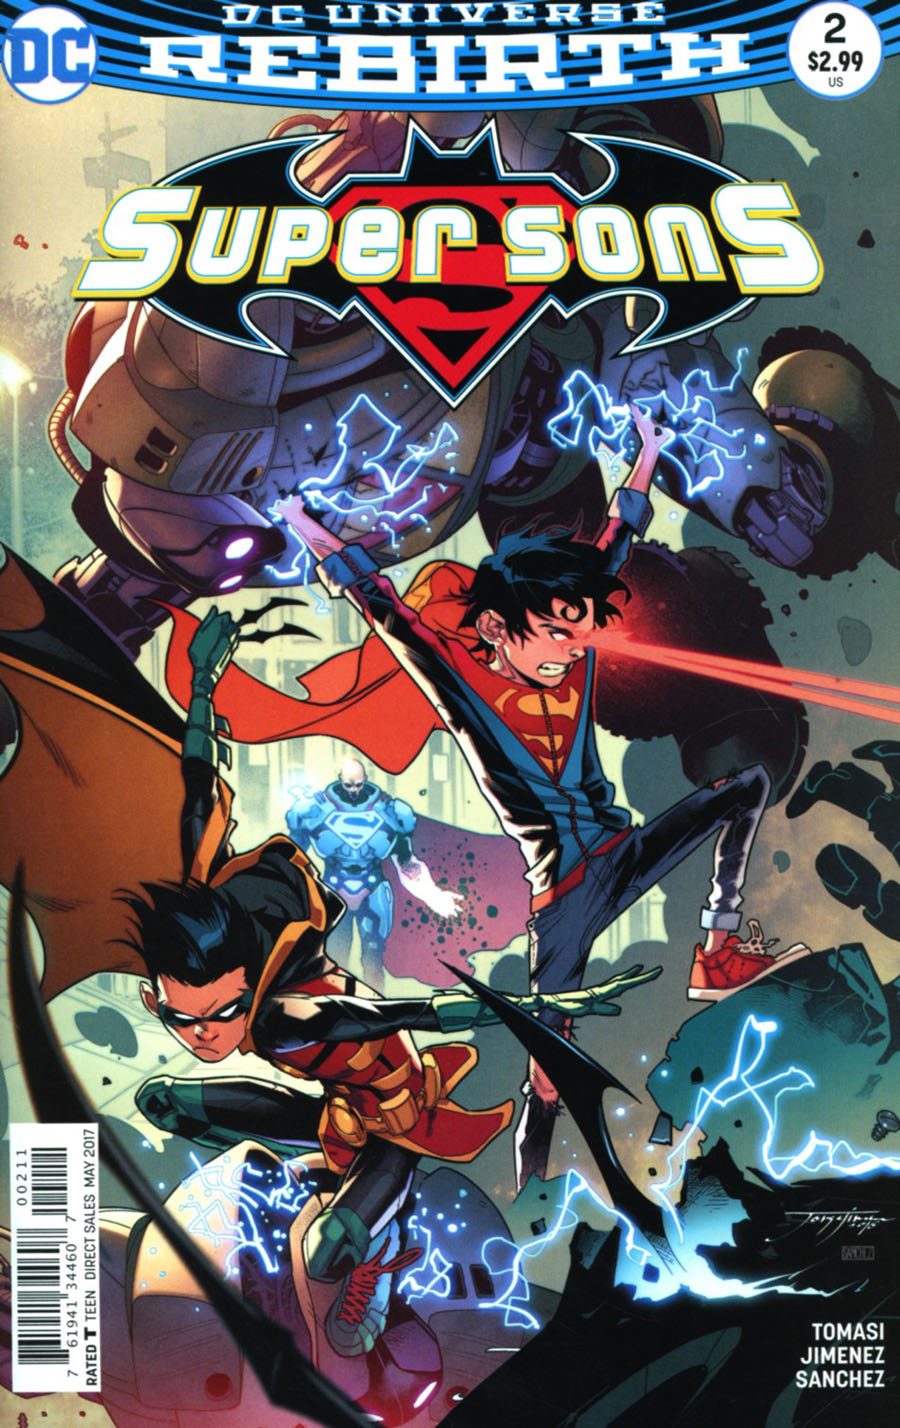 Super Sons #2